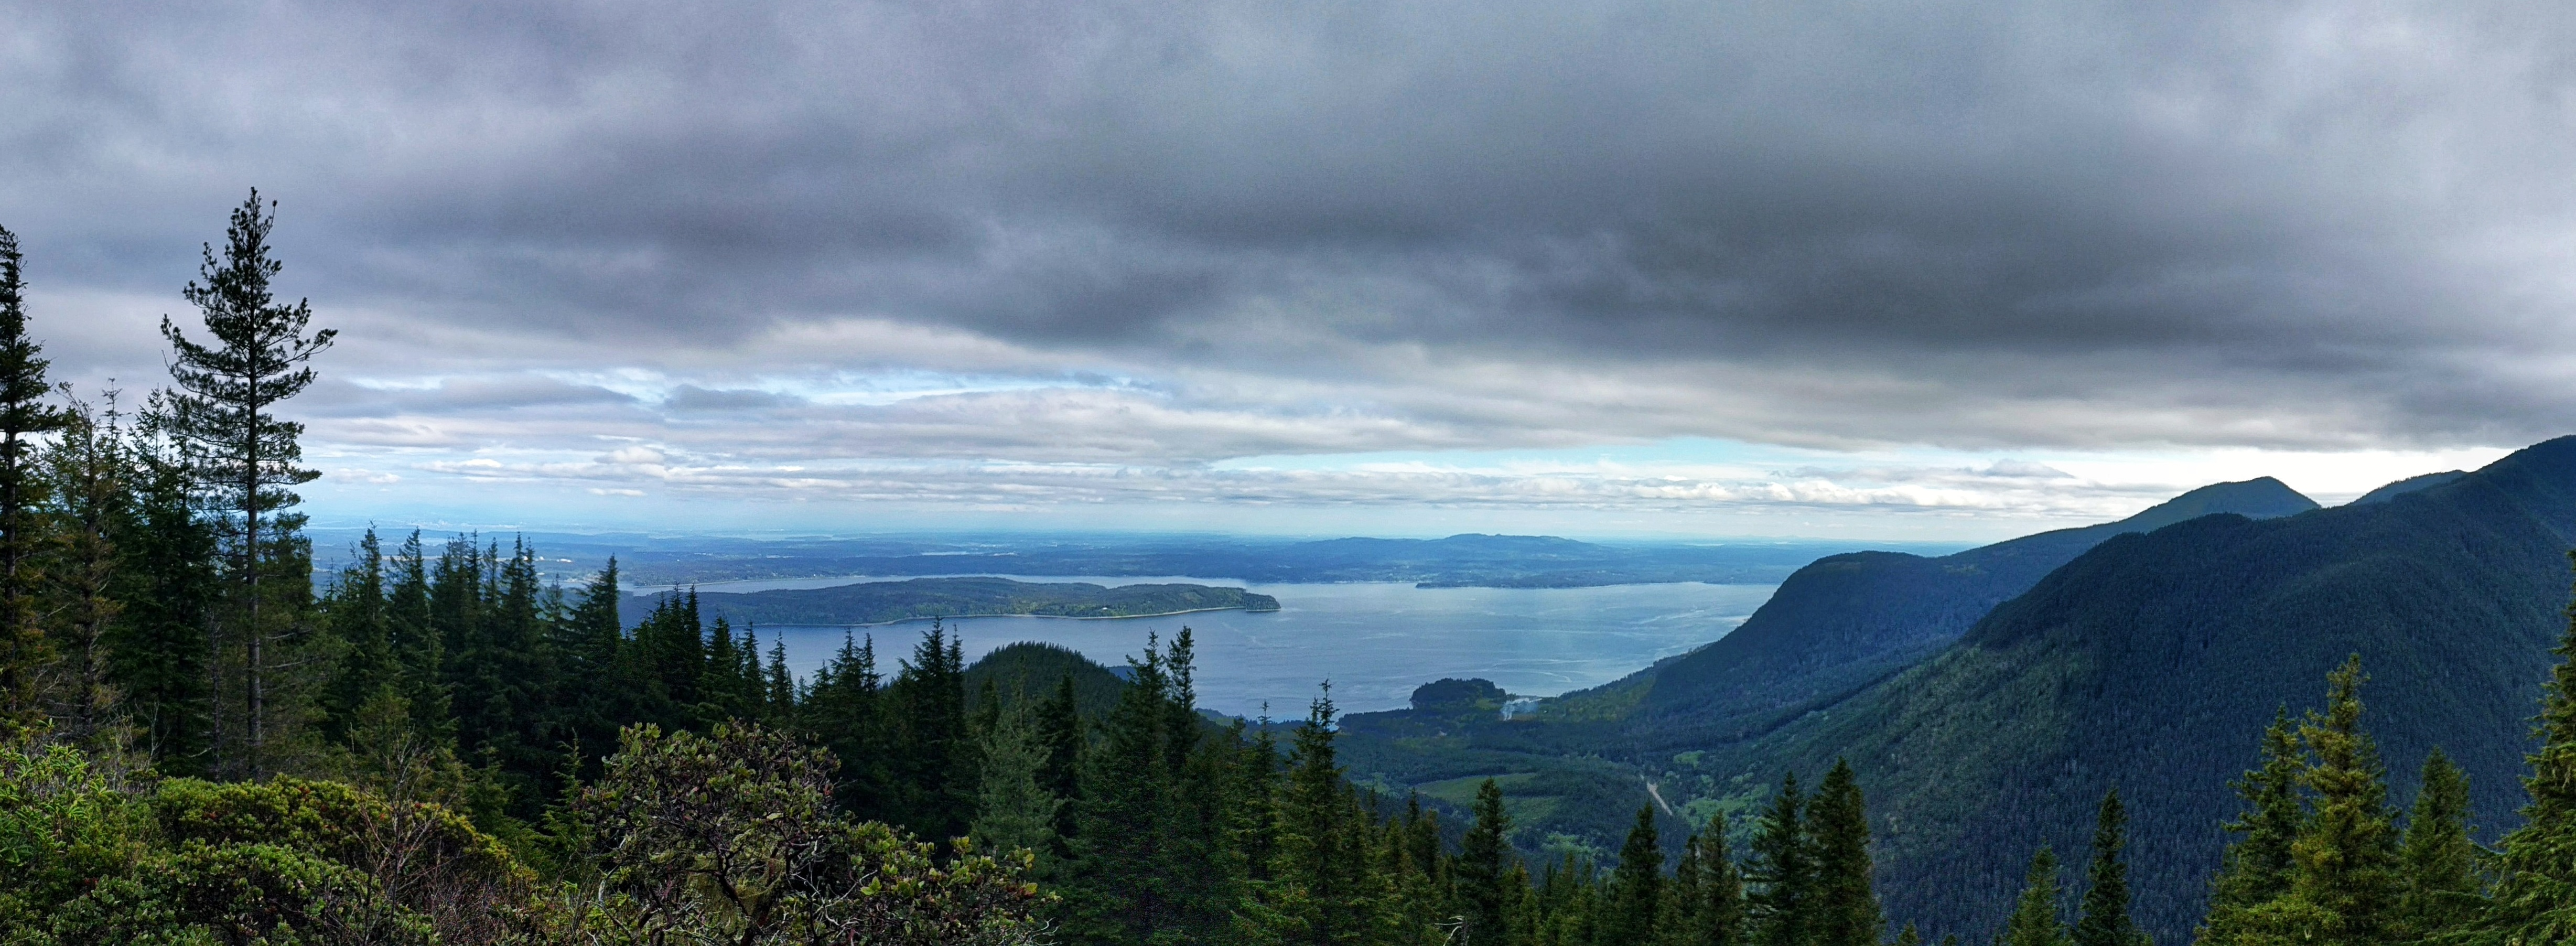 Panoramic view from atop Mount Walker of Puget Sound and Olympic Mountains, Washington